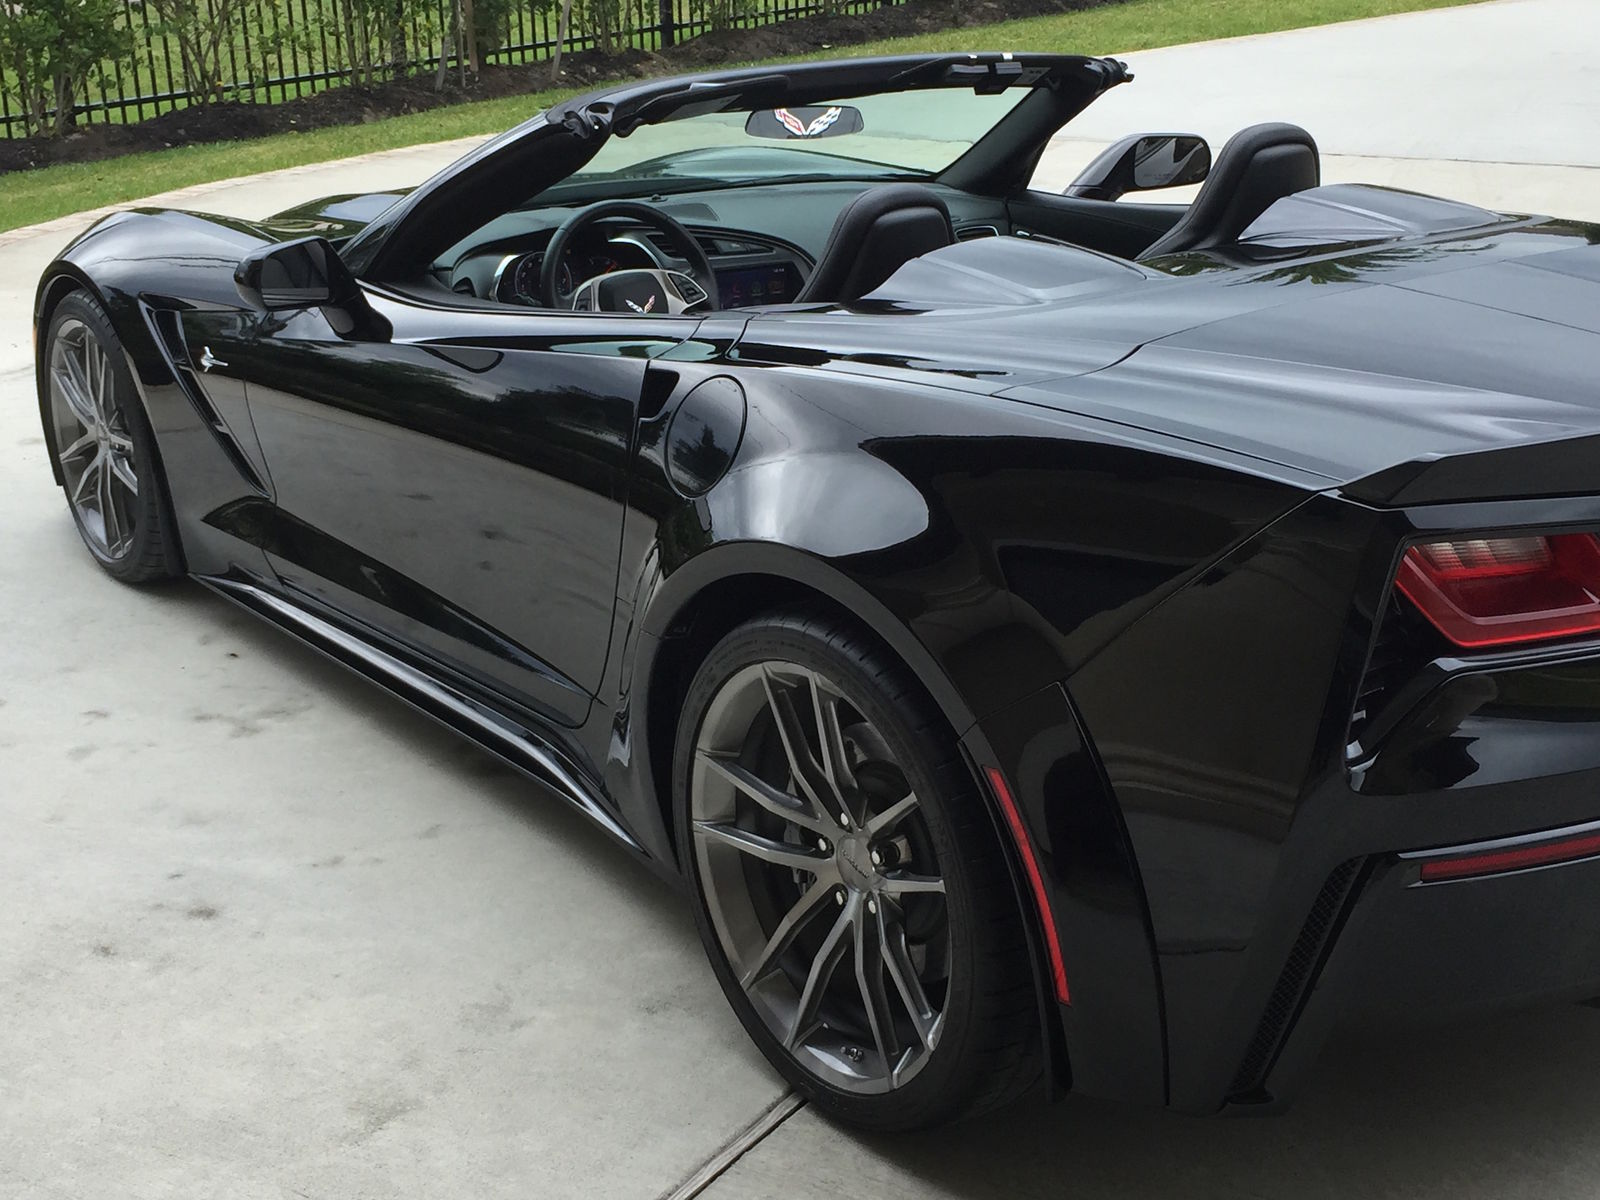 2015 Chevrolet Corvette Stingray | Keith Traylor's 830HP Widebody C7 Corvette Convertible on Forgeline One Piece Forged Monoblock AR1 Wheels